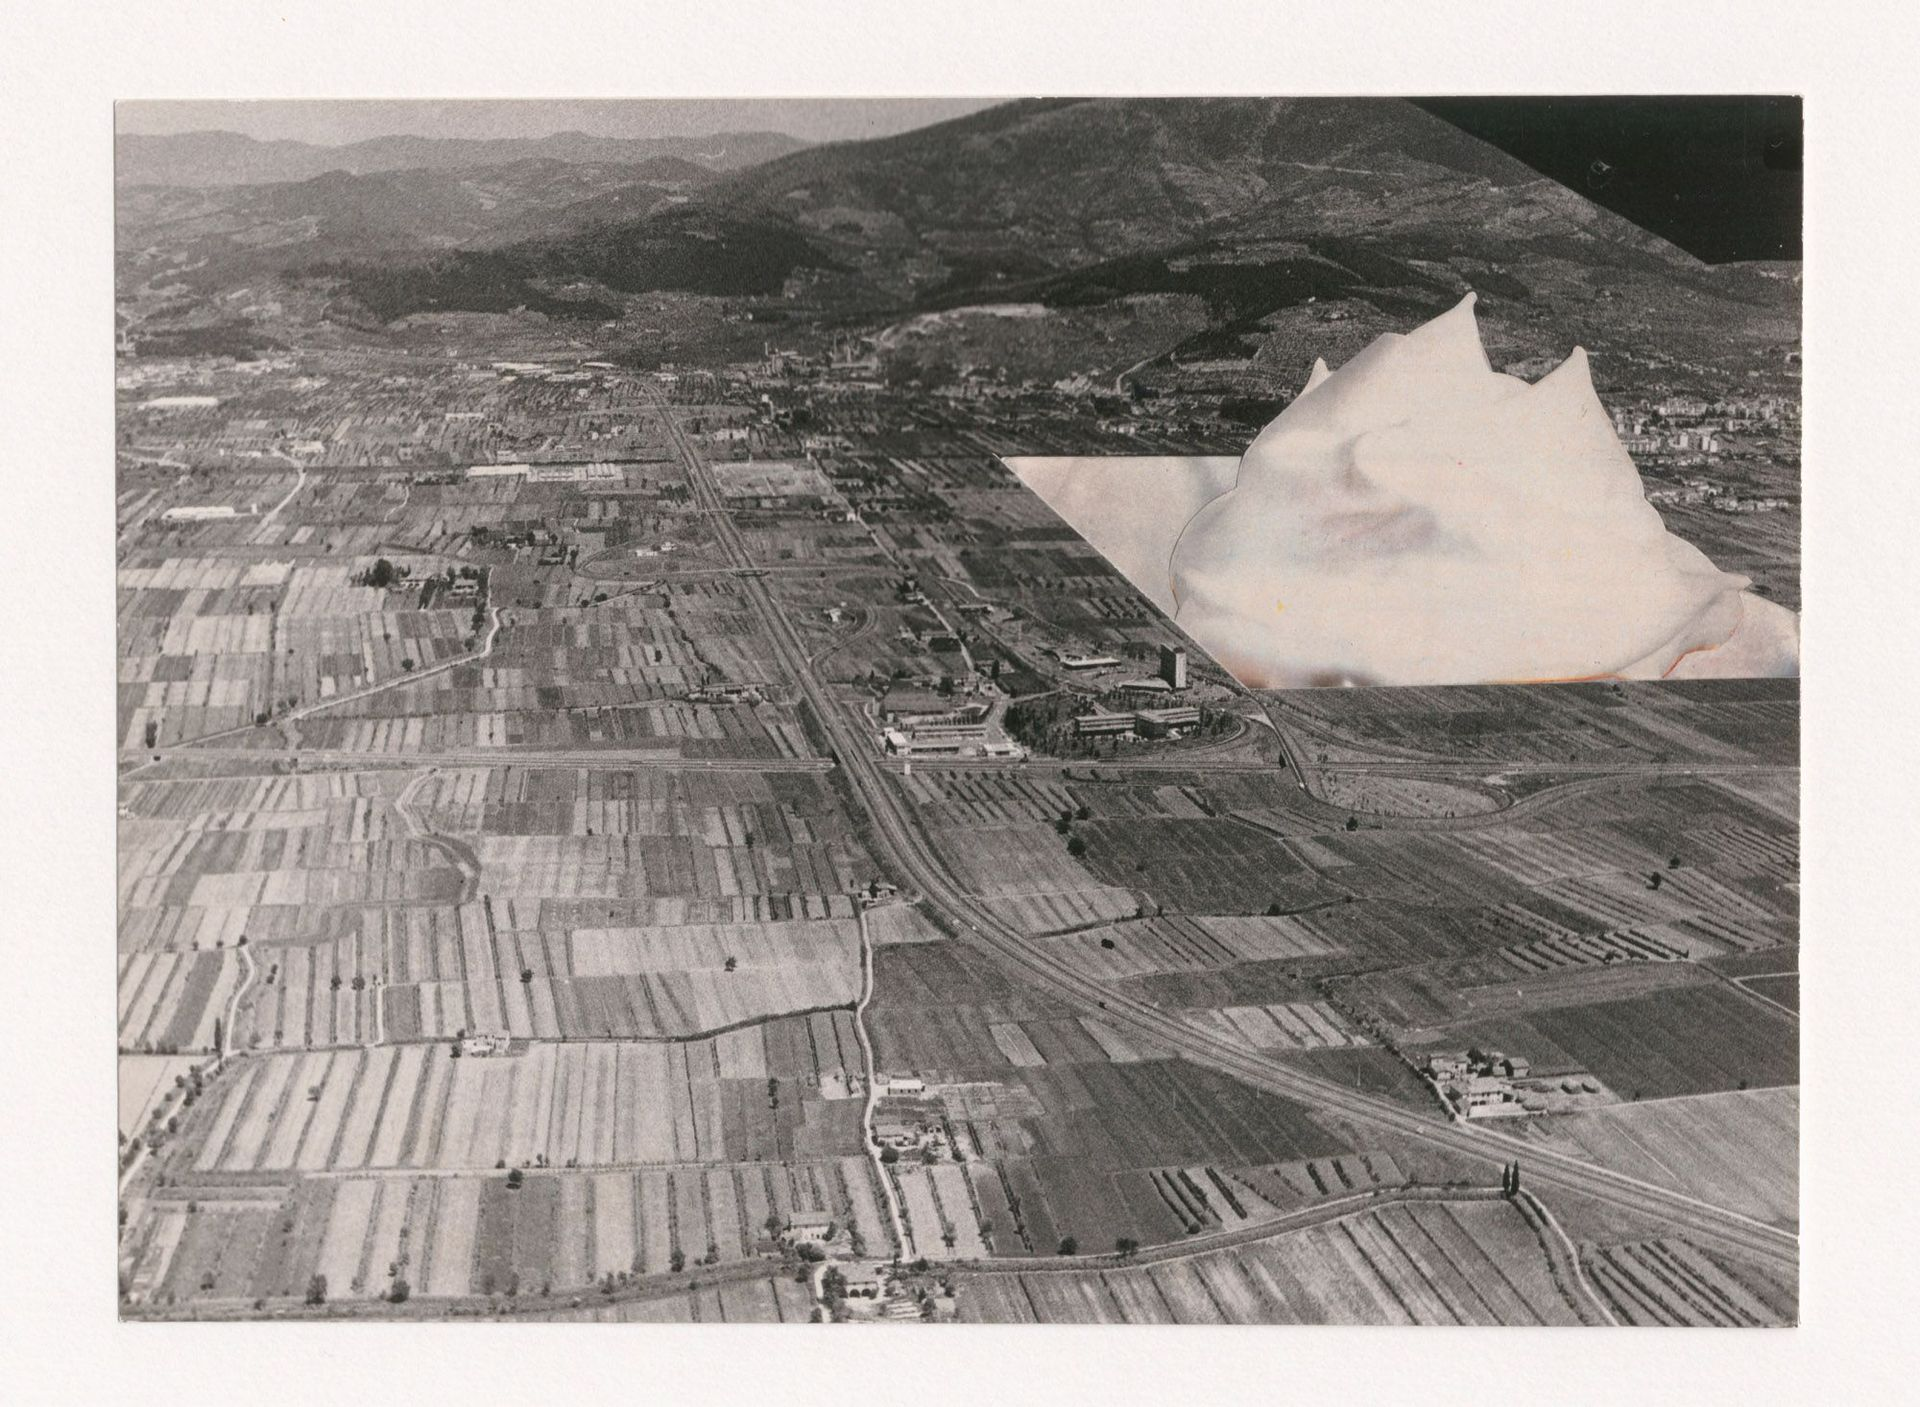 Alessandro Poli. Third of a series of seven photographic collage showing foam monument emerging from a void in the Italian countryside, from the project Breve racconto di Architettura [Brief Tale of Architecture], 1969-1970. Alessandro Poli fonds, CCA. ARCH400052